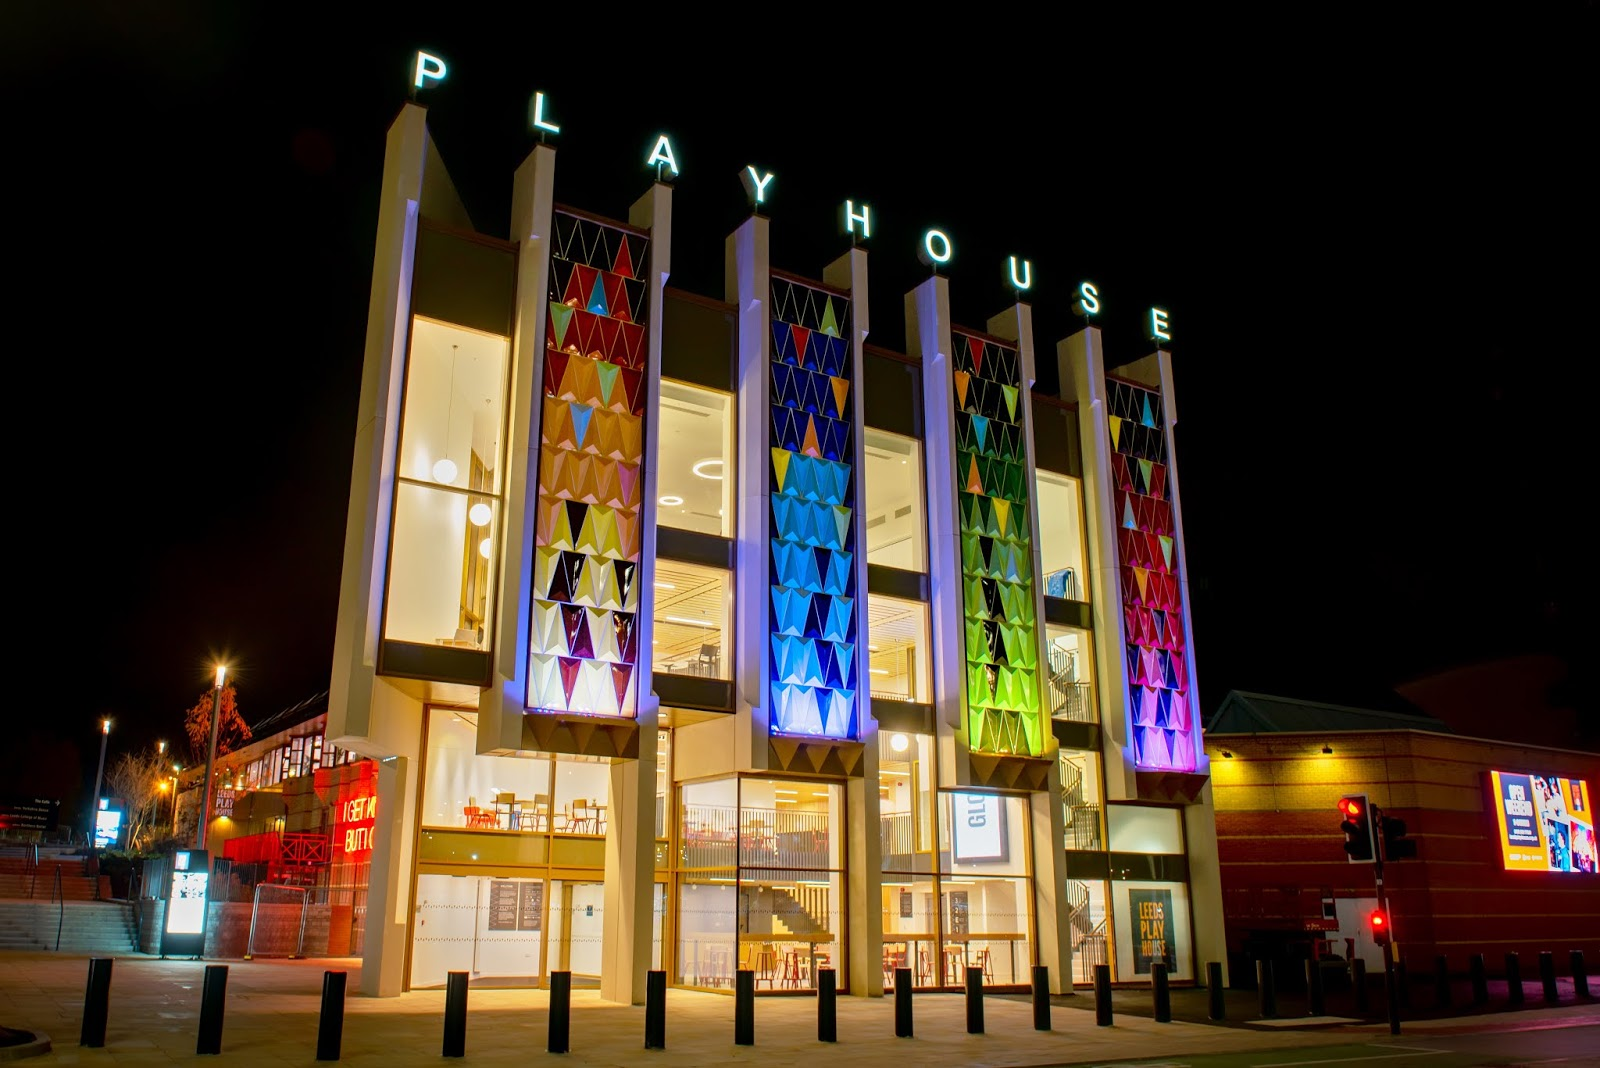 A Look Inside The Leeds Playhouse | Accessibility & Inclusion | AD